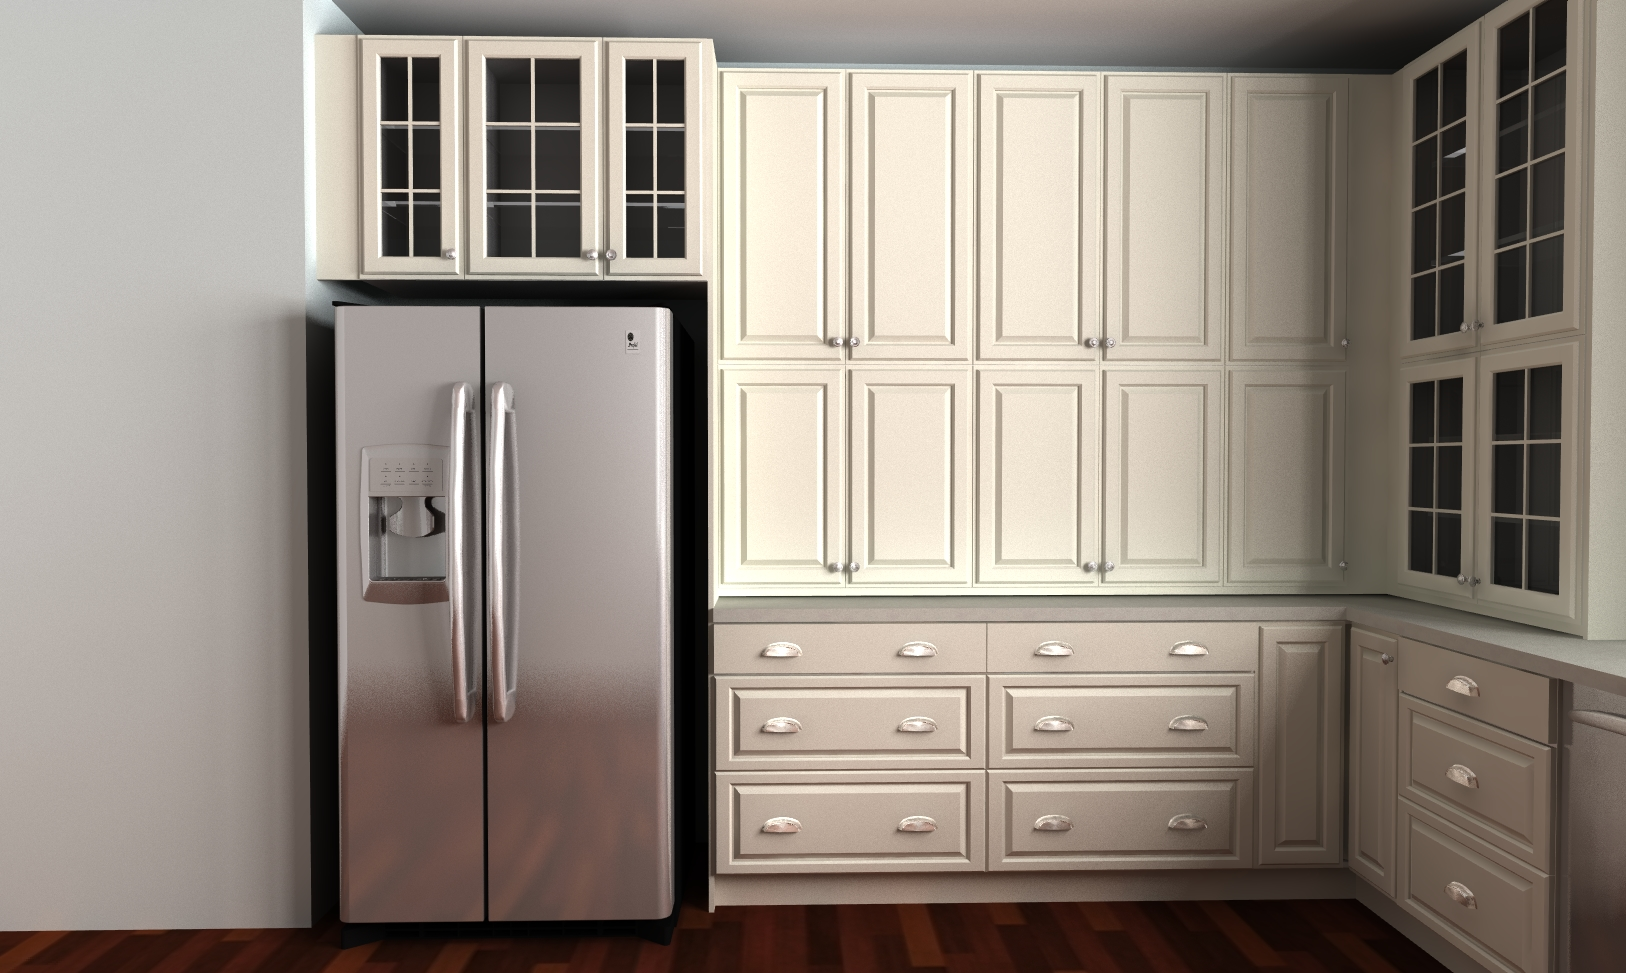 three questions to ask before hiring a professional to install an ikea kitchen install kitchen cabinets fridge wall